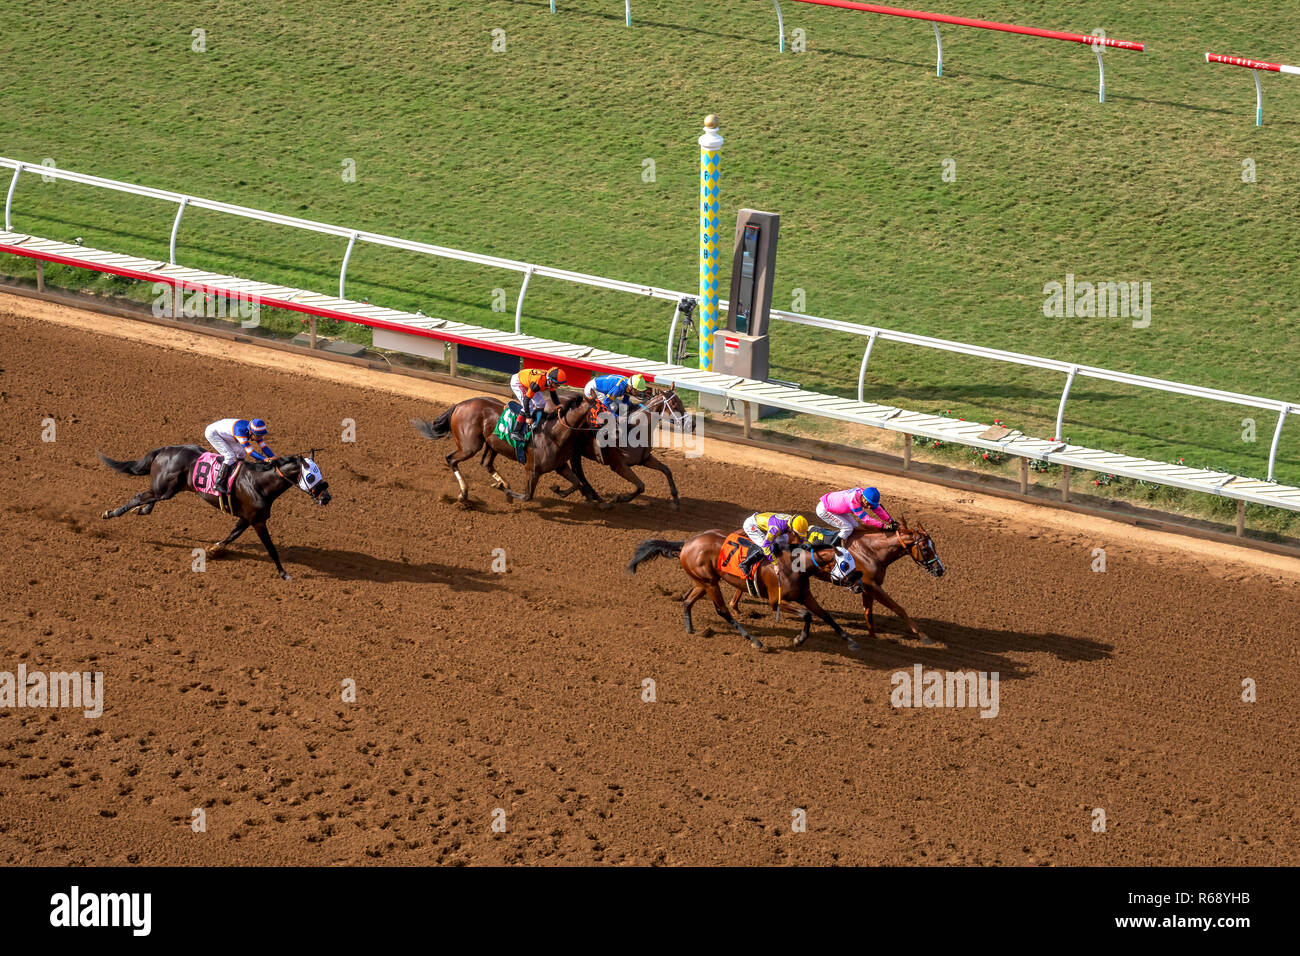 Race horses crossing the finish line in Del Mar, California - Stock Image